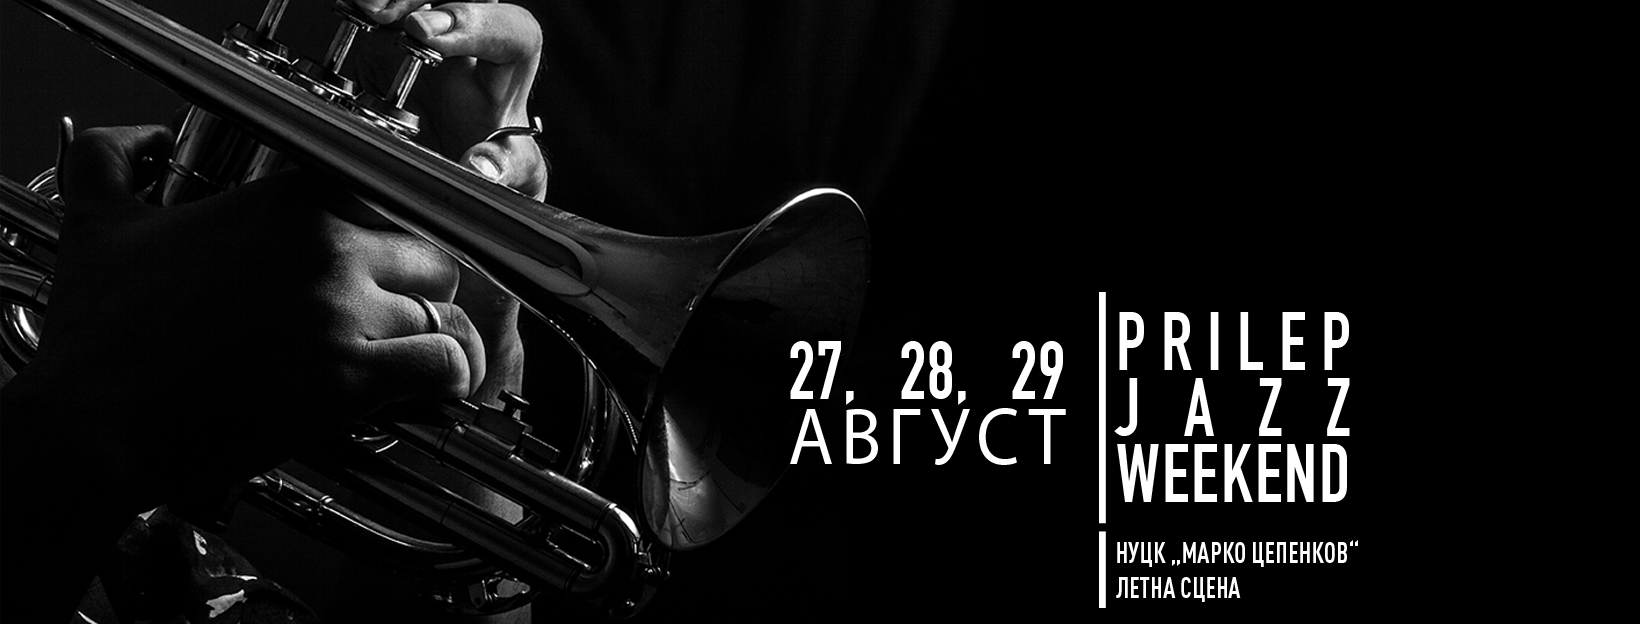 27.09.2020 - 29.09.2020 International Prilep Jazz Weekend